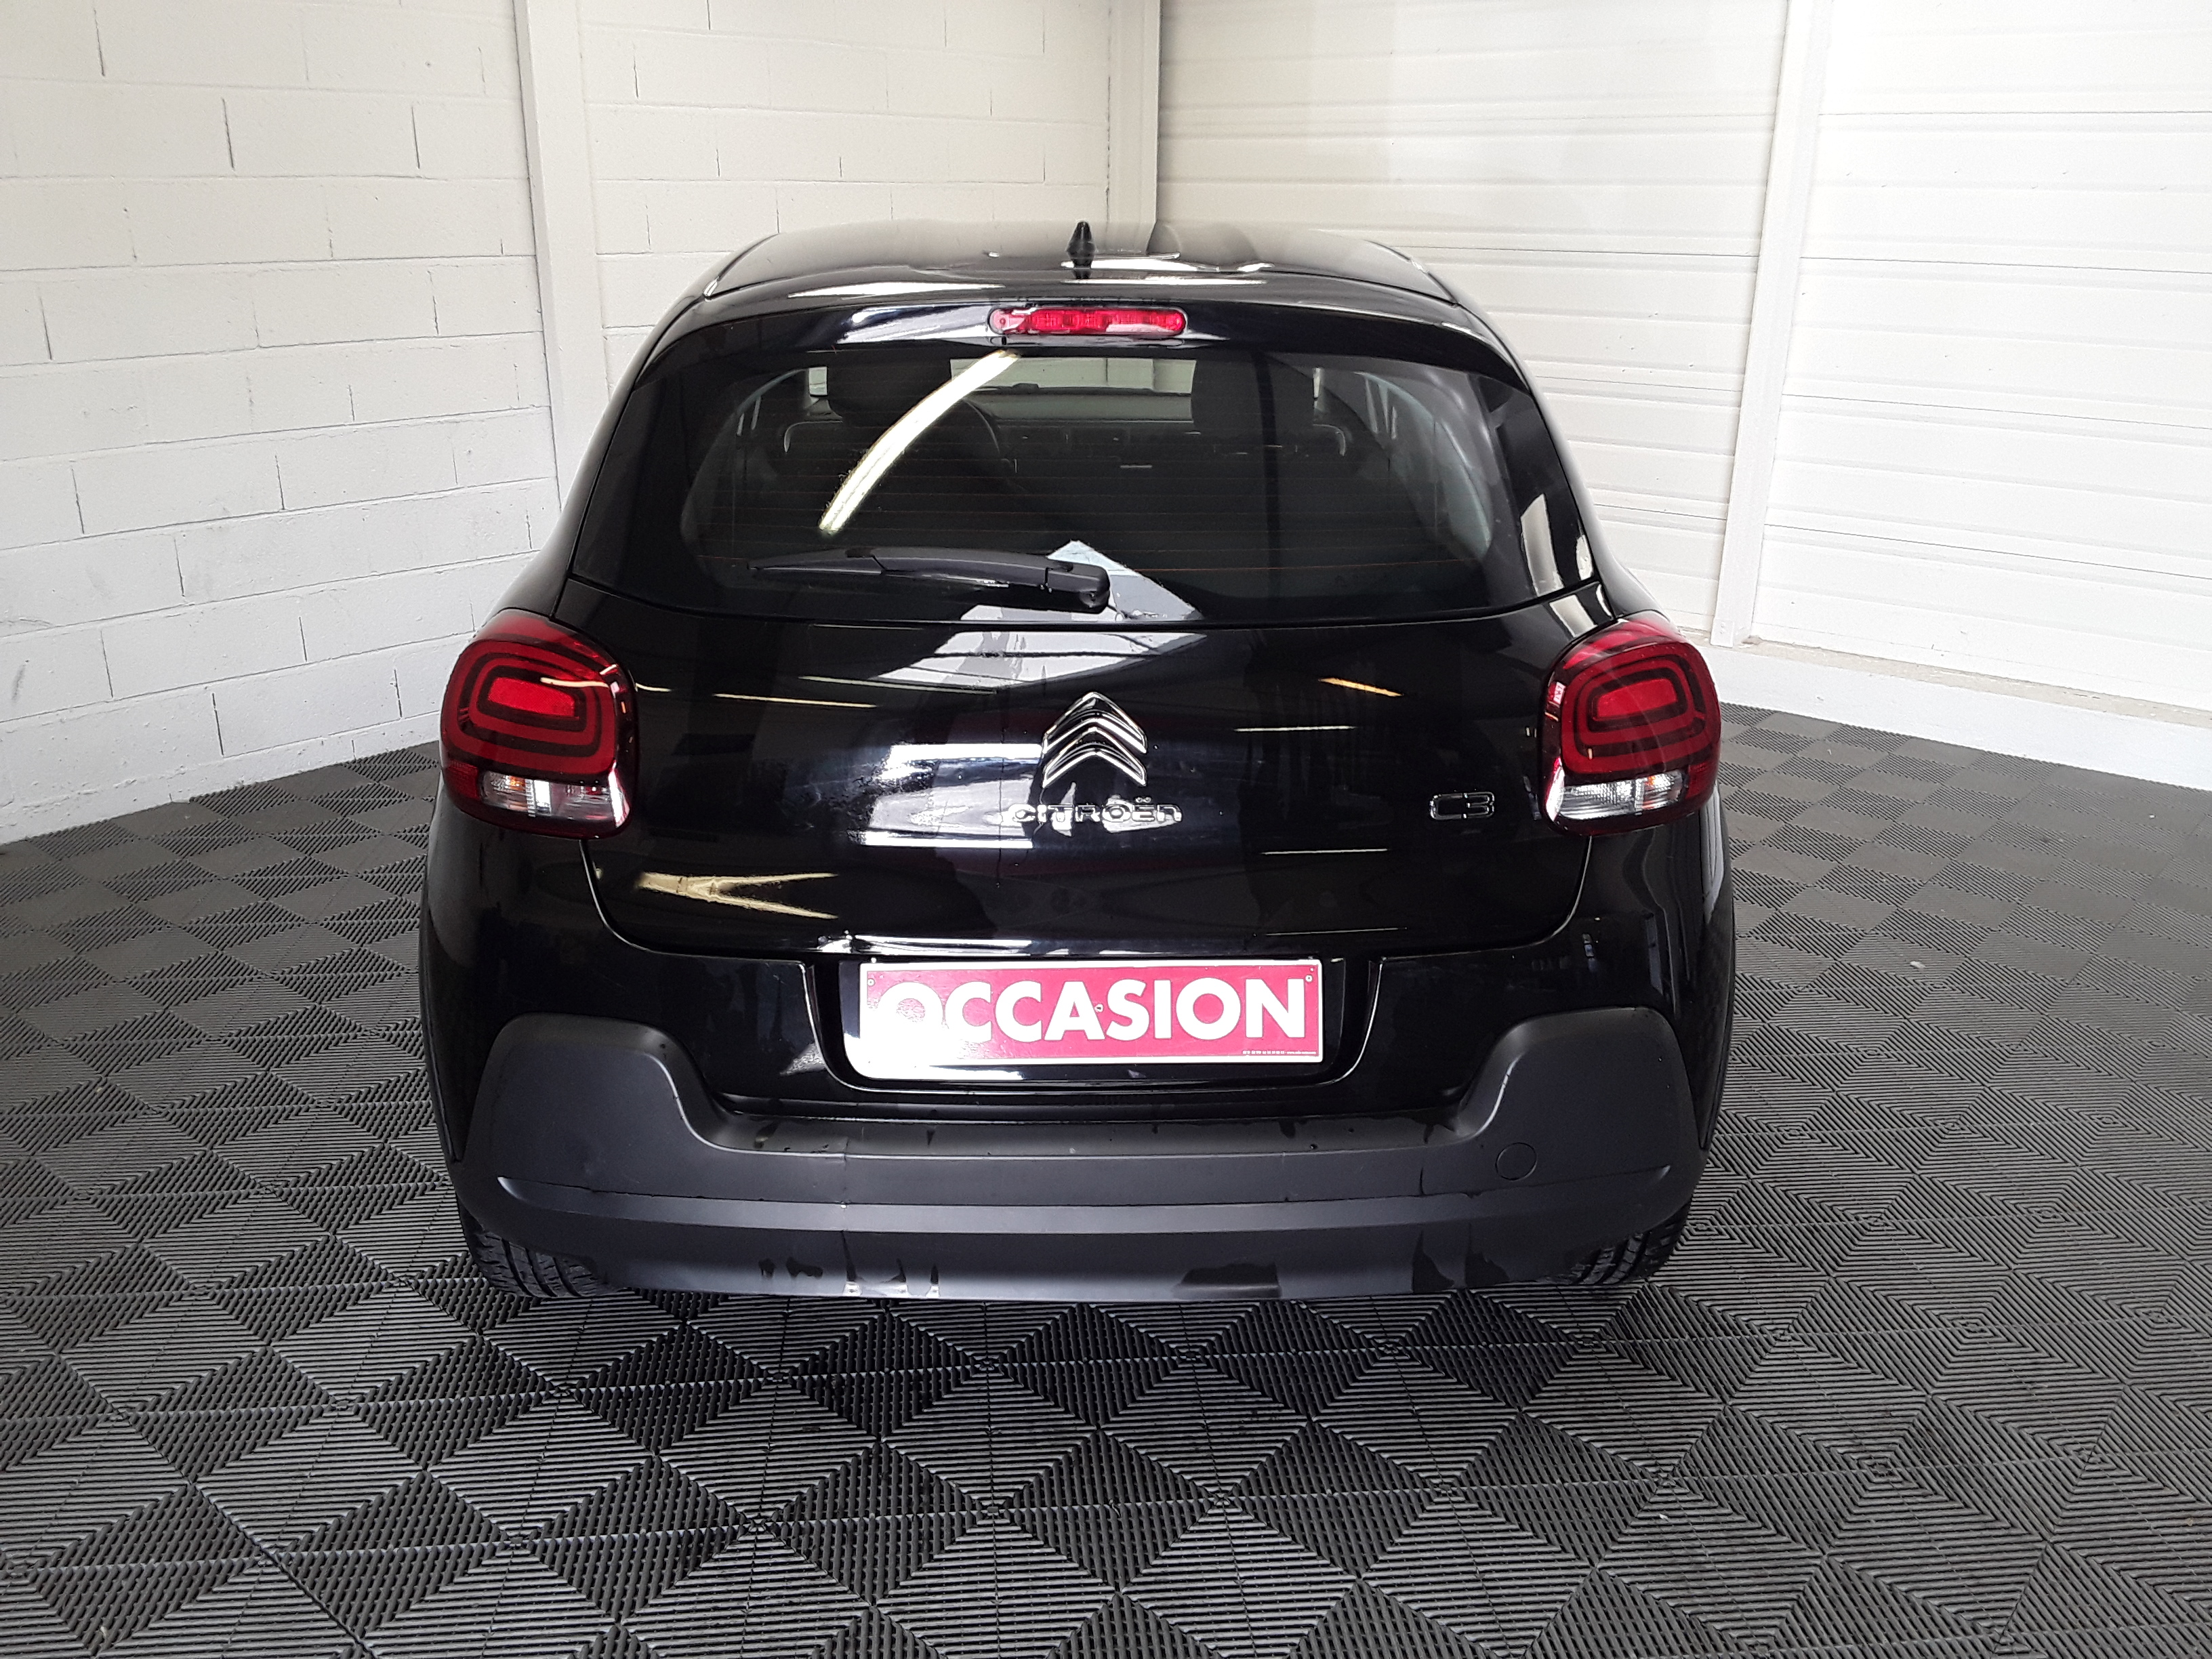 CITROEN C3 BUSINESS 2017 à 9900 € - Photo n°5